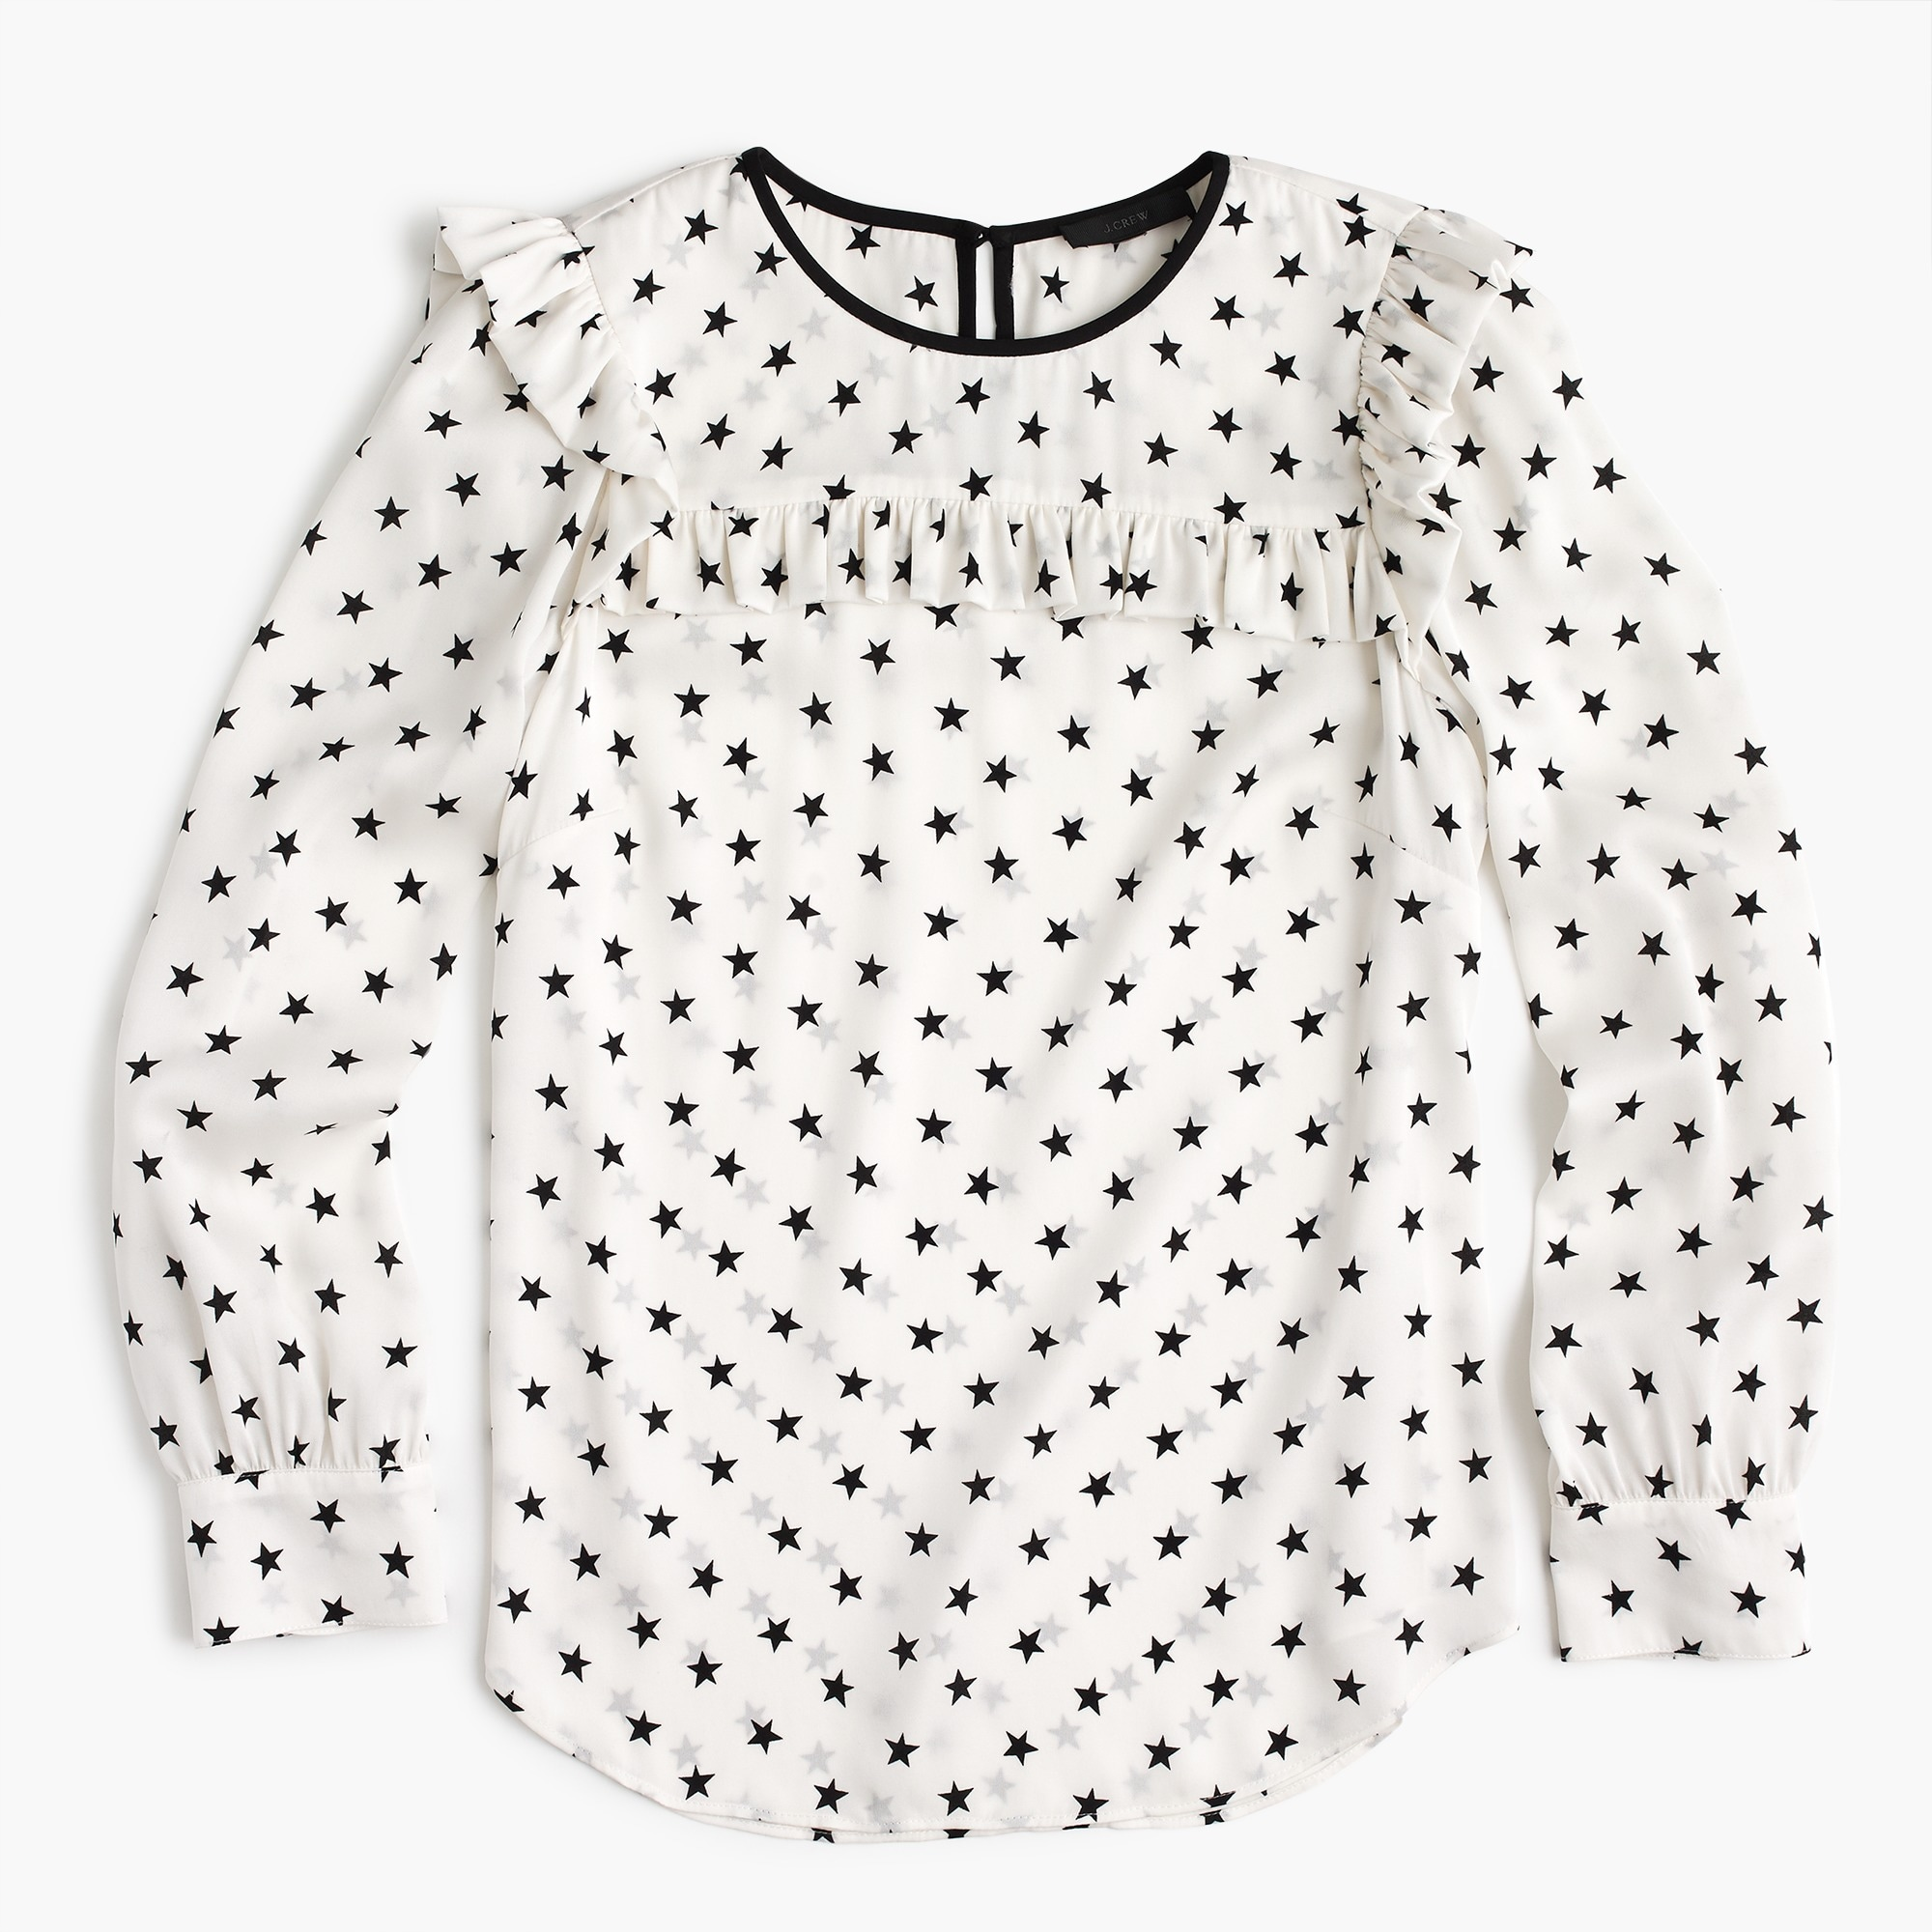 Ruffle silk top in star print